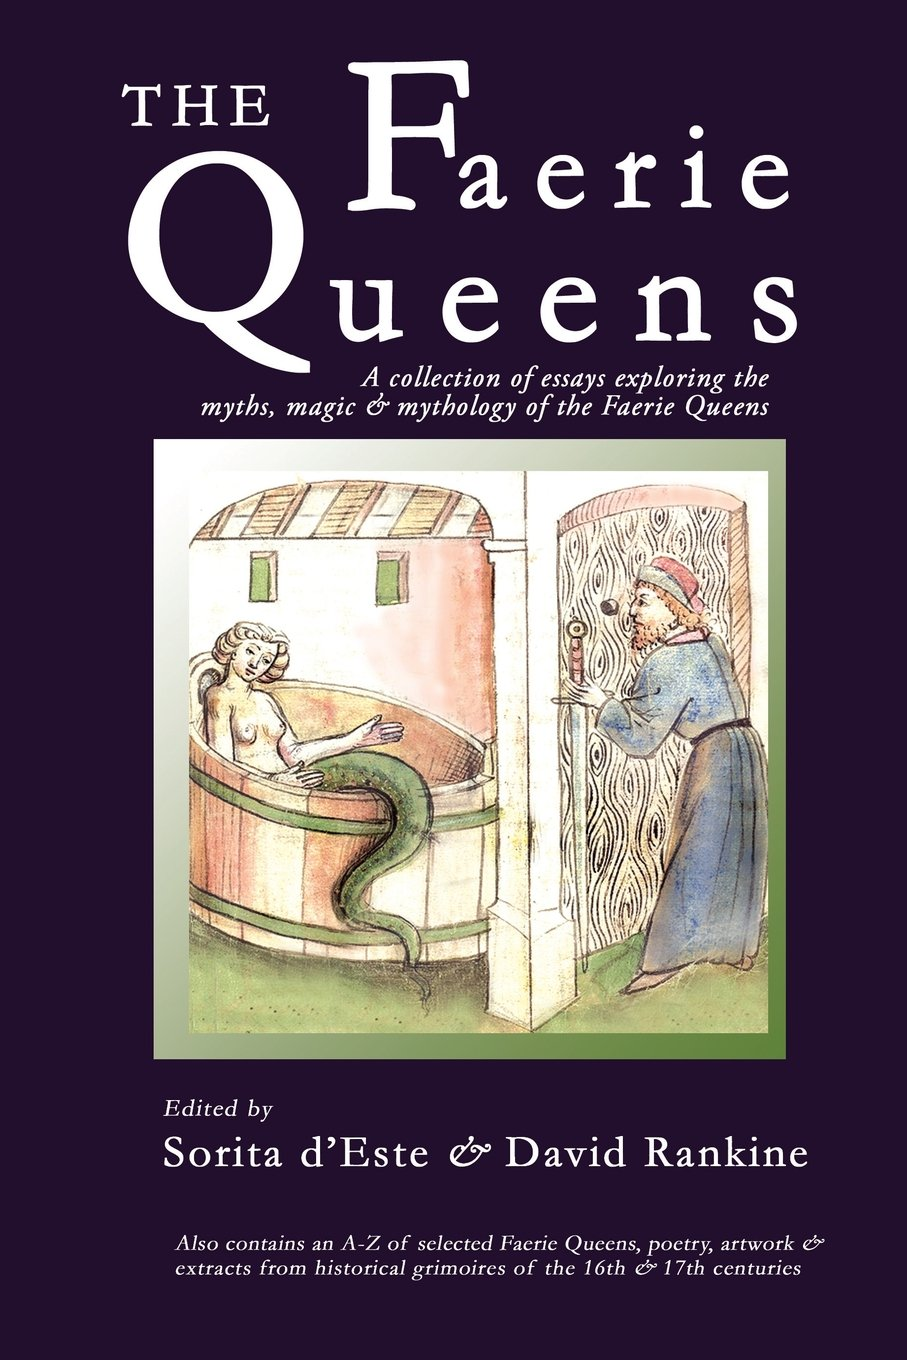 the faerie queens a collection of essays exploring the myths the faerie queens a collection of essays exploring the myths magic and mythology of the faerie queens sorita d este david rankine emily carding